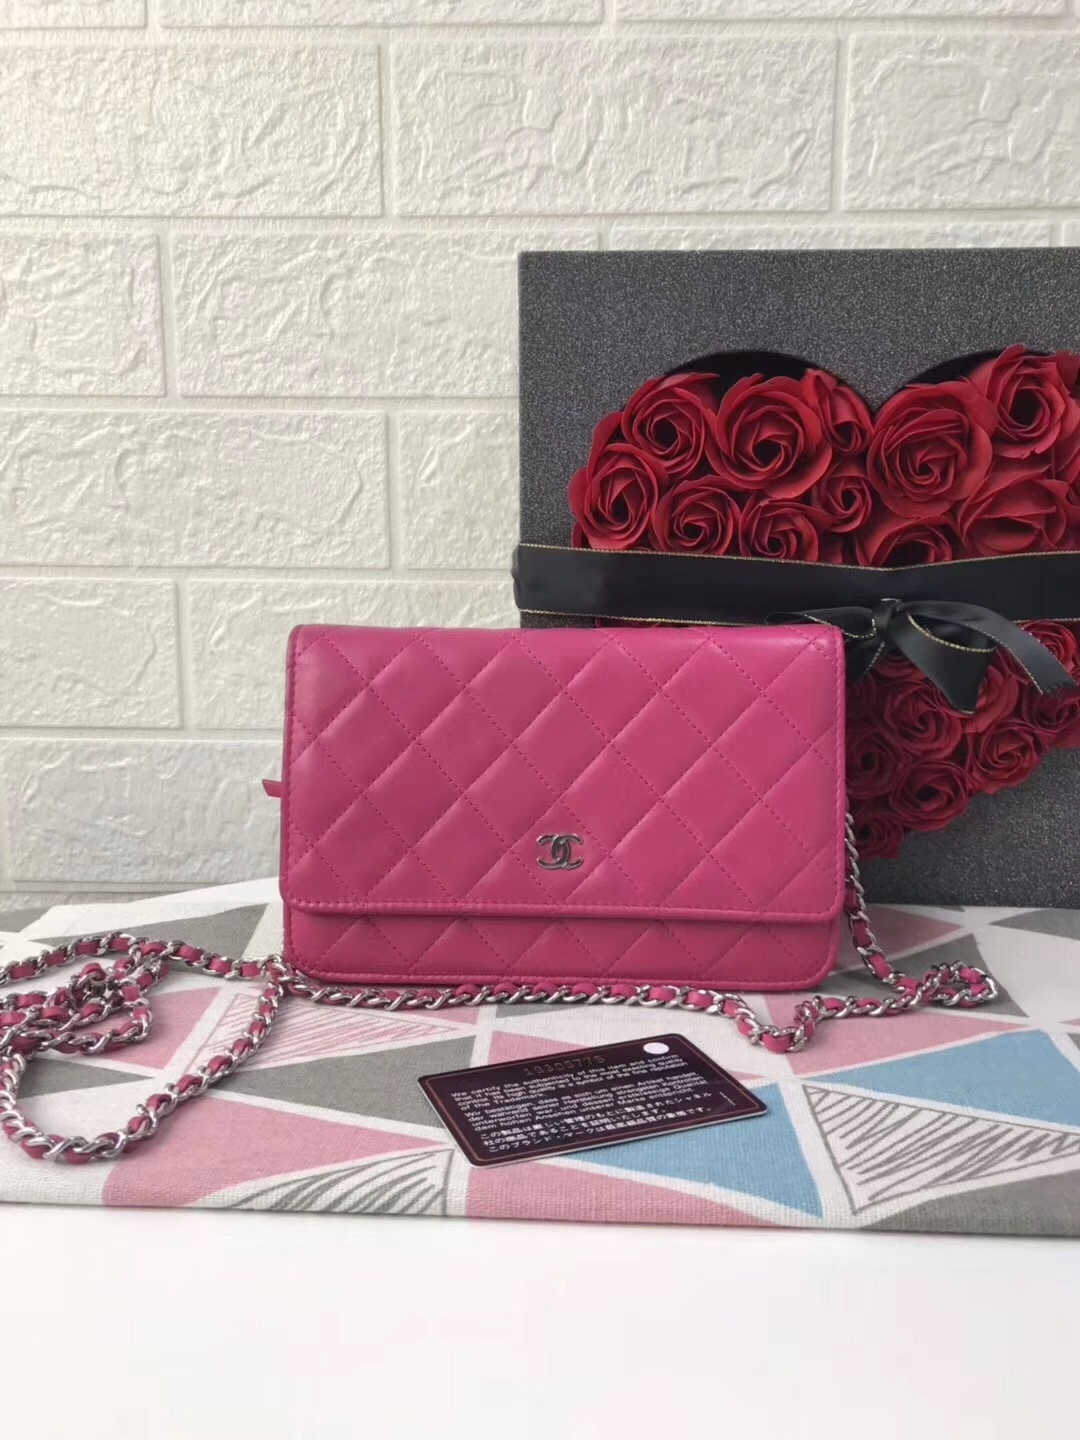 100% AUTH CHANEL WOC Quilted Lambskin PINK Wallet on Chain Flap Bag SHW